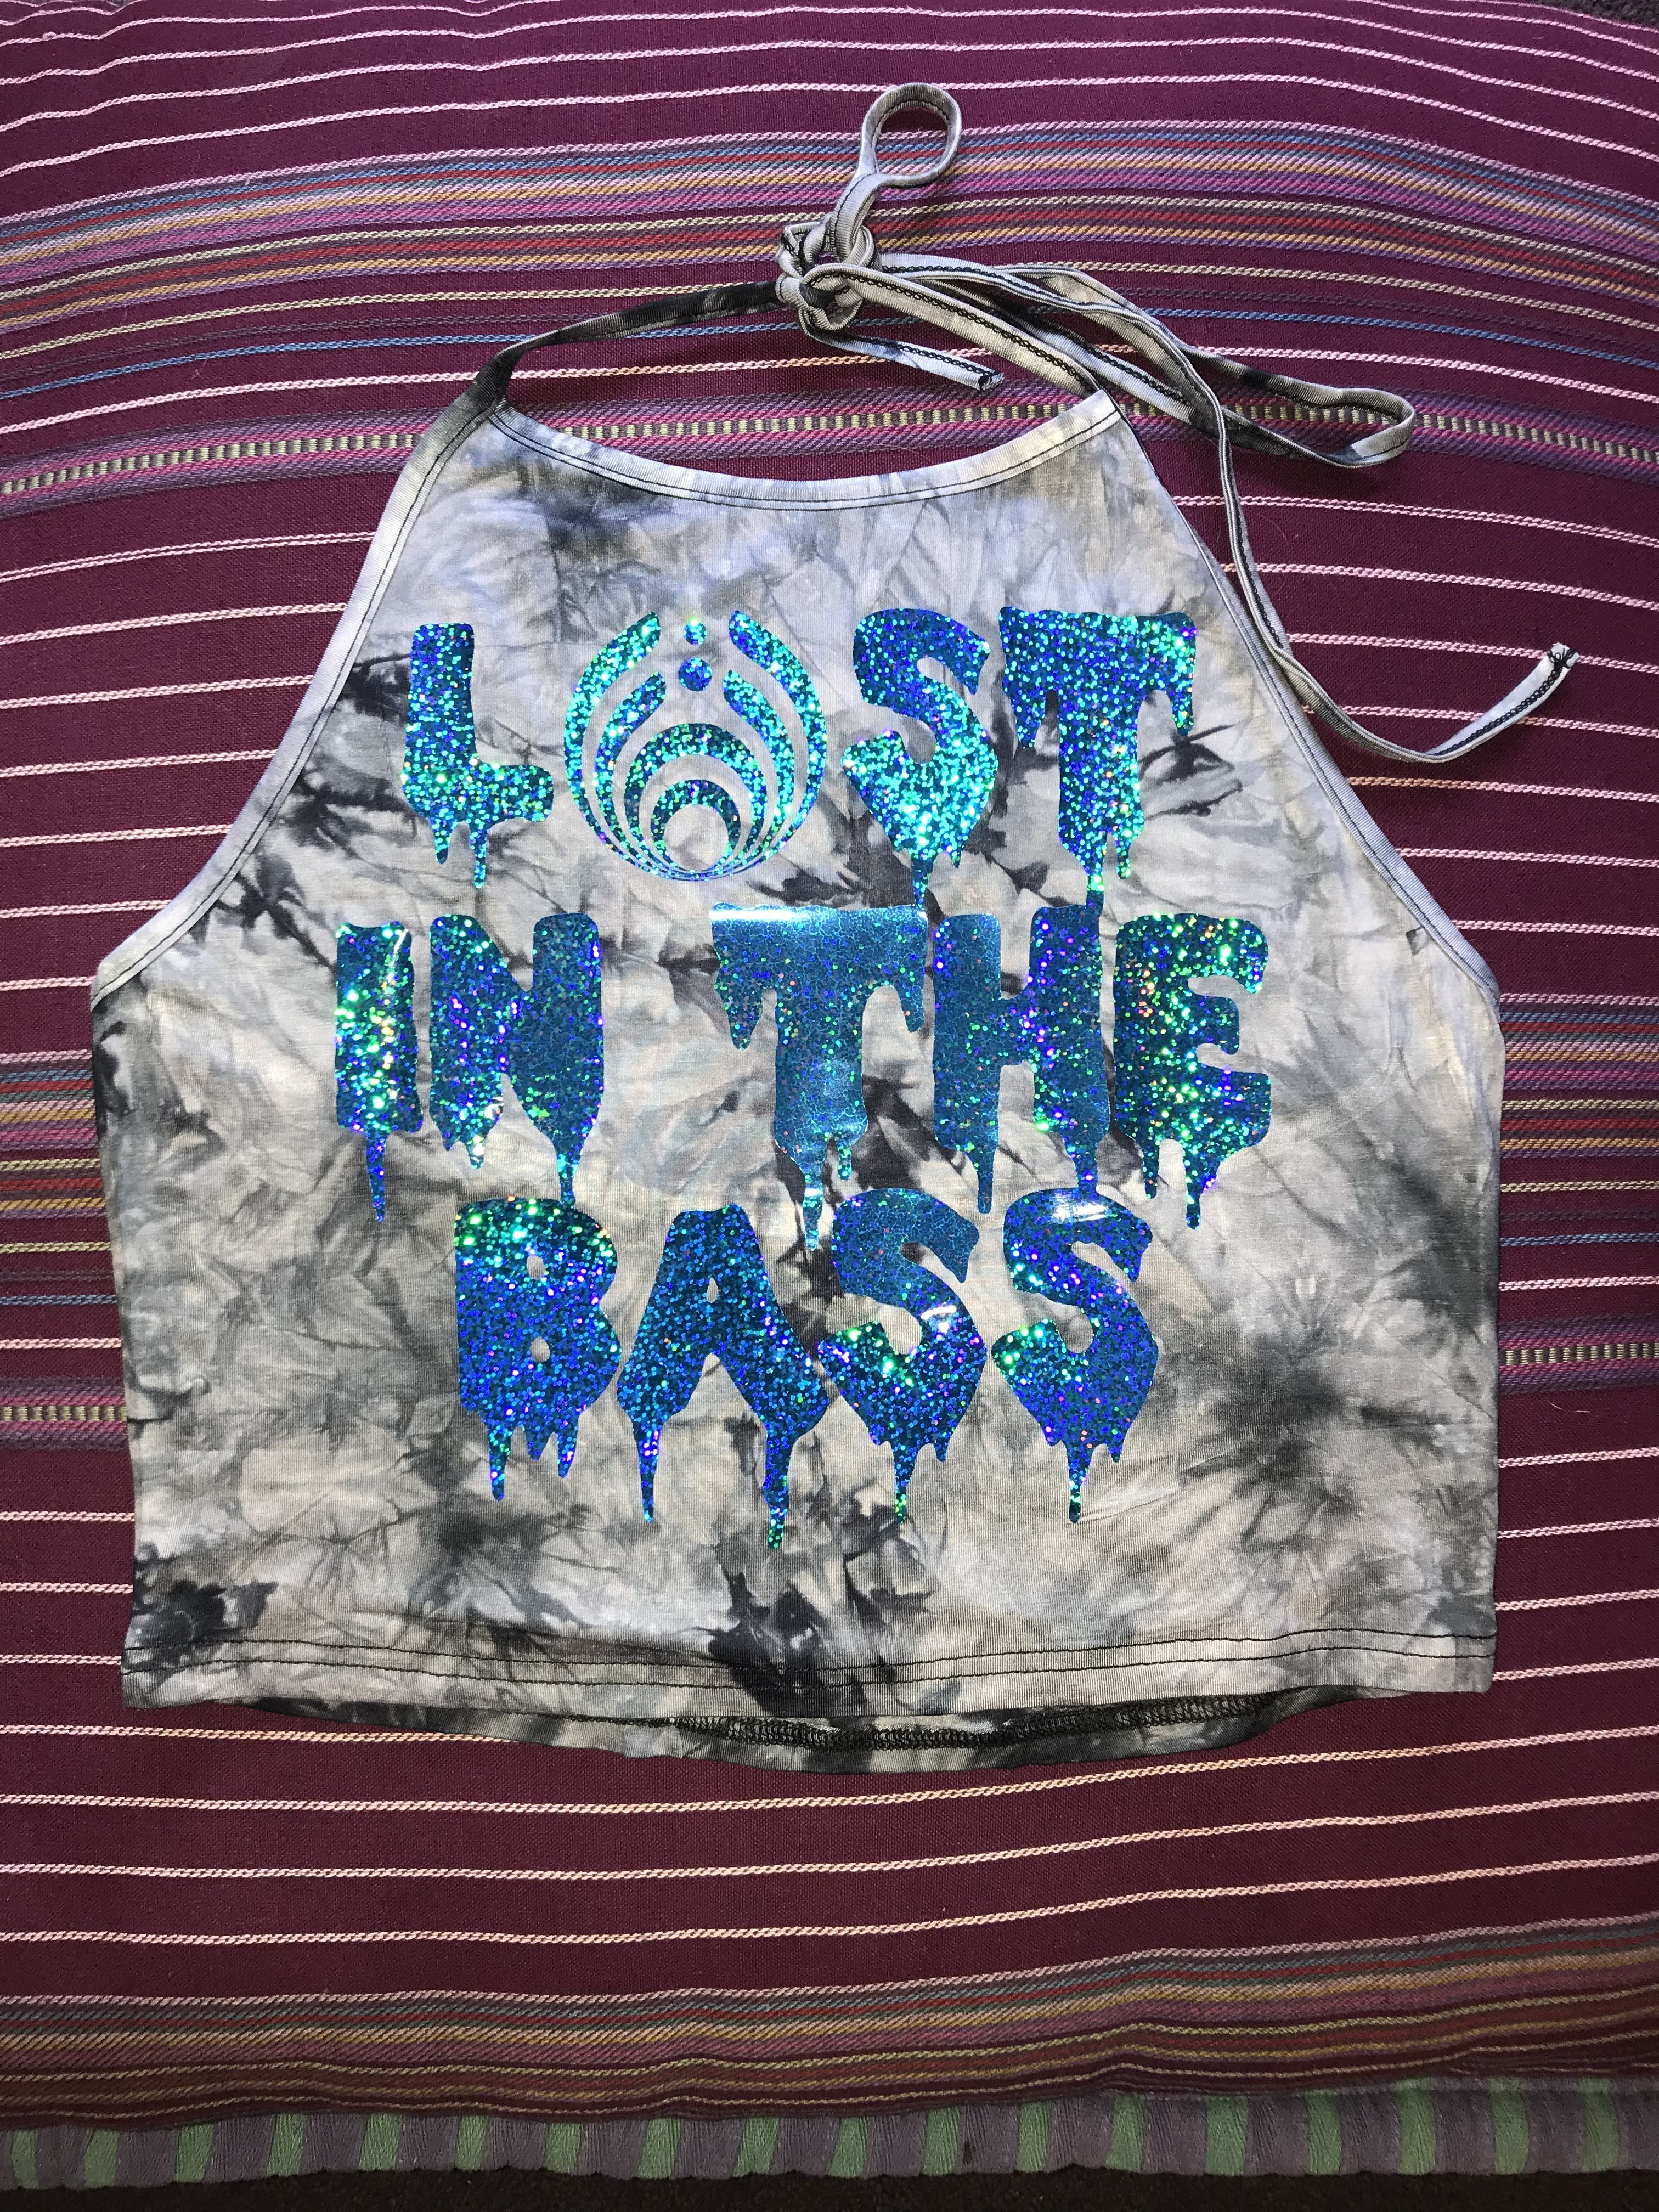 Lost In The Bass Holographic Tie Dye Rave Crop Top Edm Edm